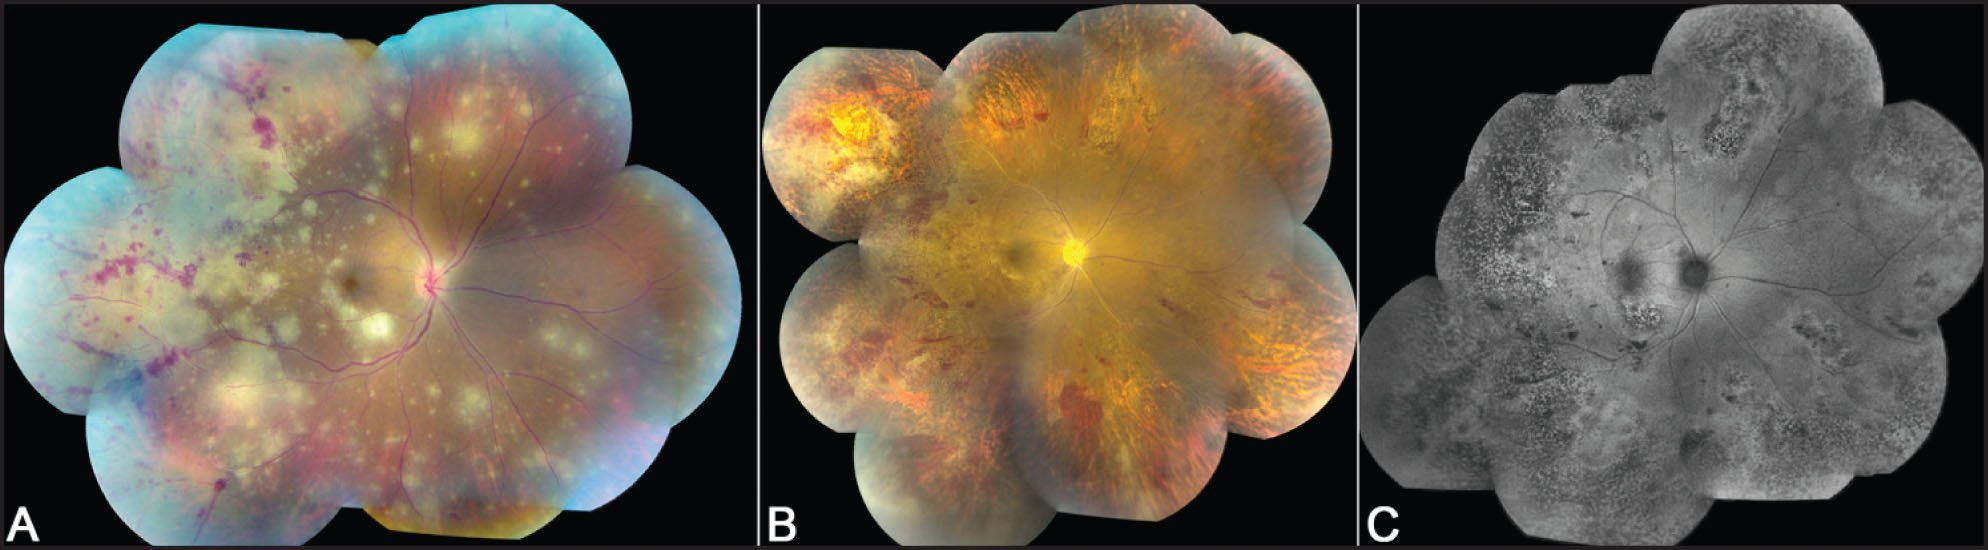 Photo Montage Demonstrating Widespread Retinal Opacification and Perivascular Hemorrhage at Initial Visit (A). Widespread Retinal Pigment Epithelium Atrophy and Necrosis Is Seen at the 1-Month Follow-Up (B) with Multiple Regions of Stippled Hyperfluorescence or Hypofluorescence on the Fundus Autofluorescence Image Corresponding to Widespread Retinal Pigment Epithelium Atrophy (C).